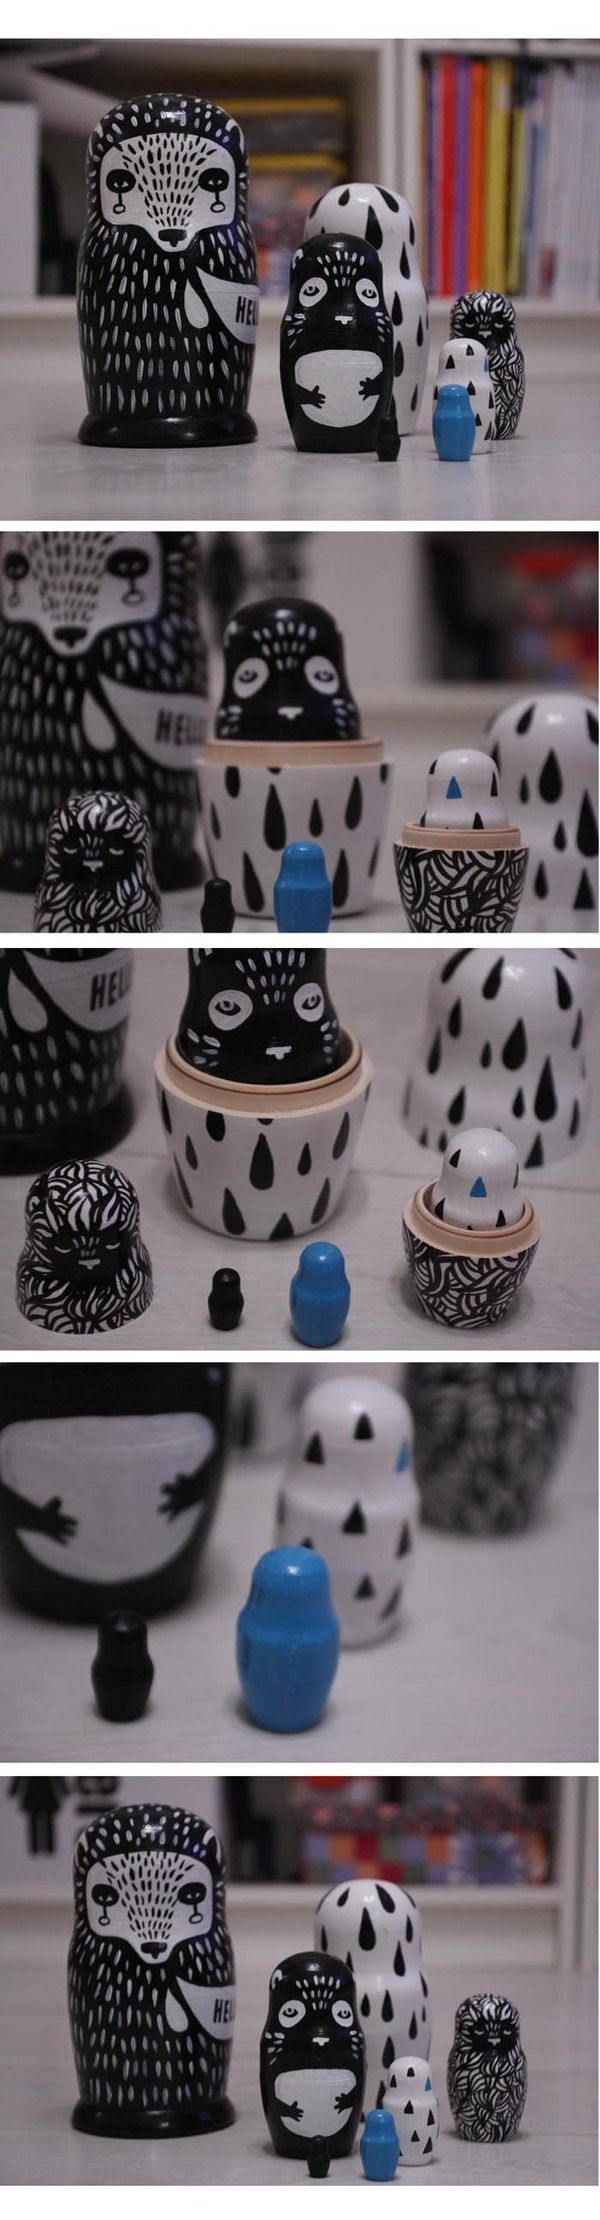 http://www.behance.net/gallery/Matryoshka-dolls/2645207